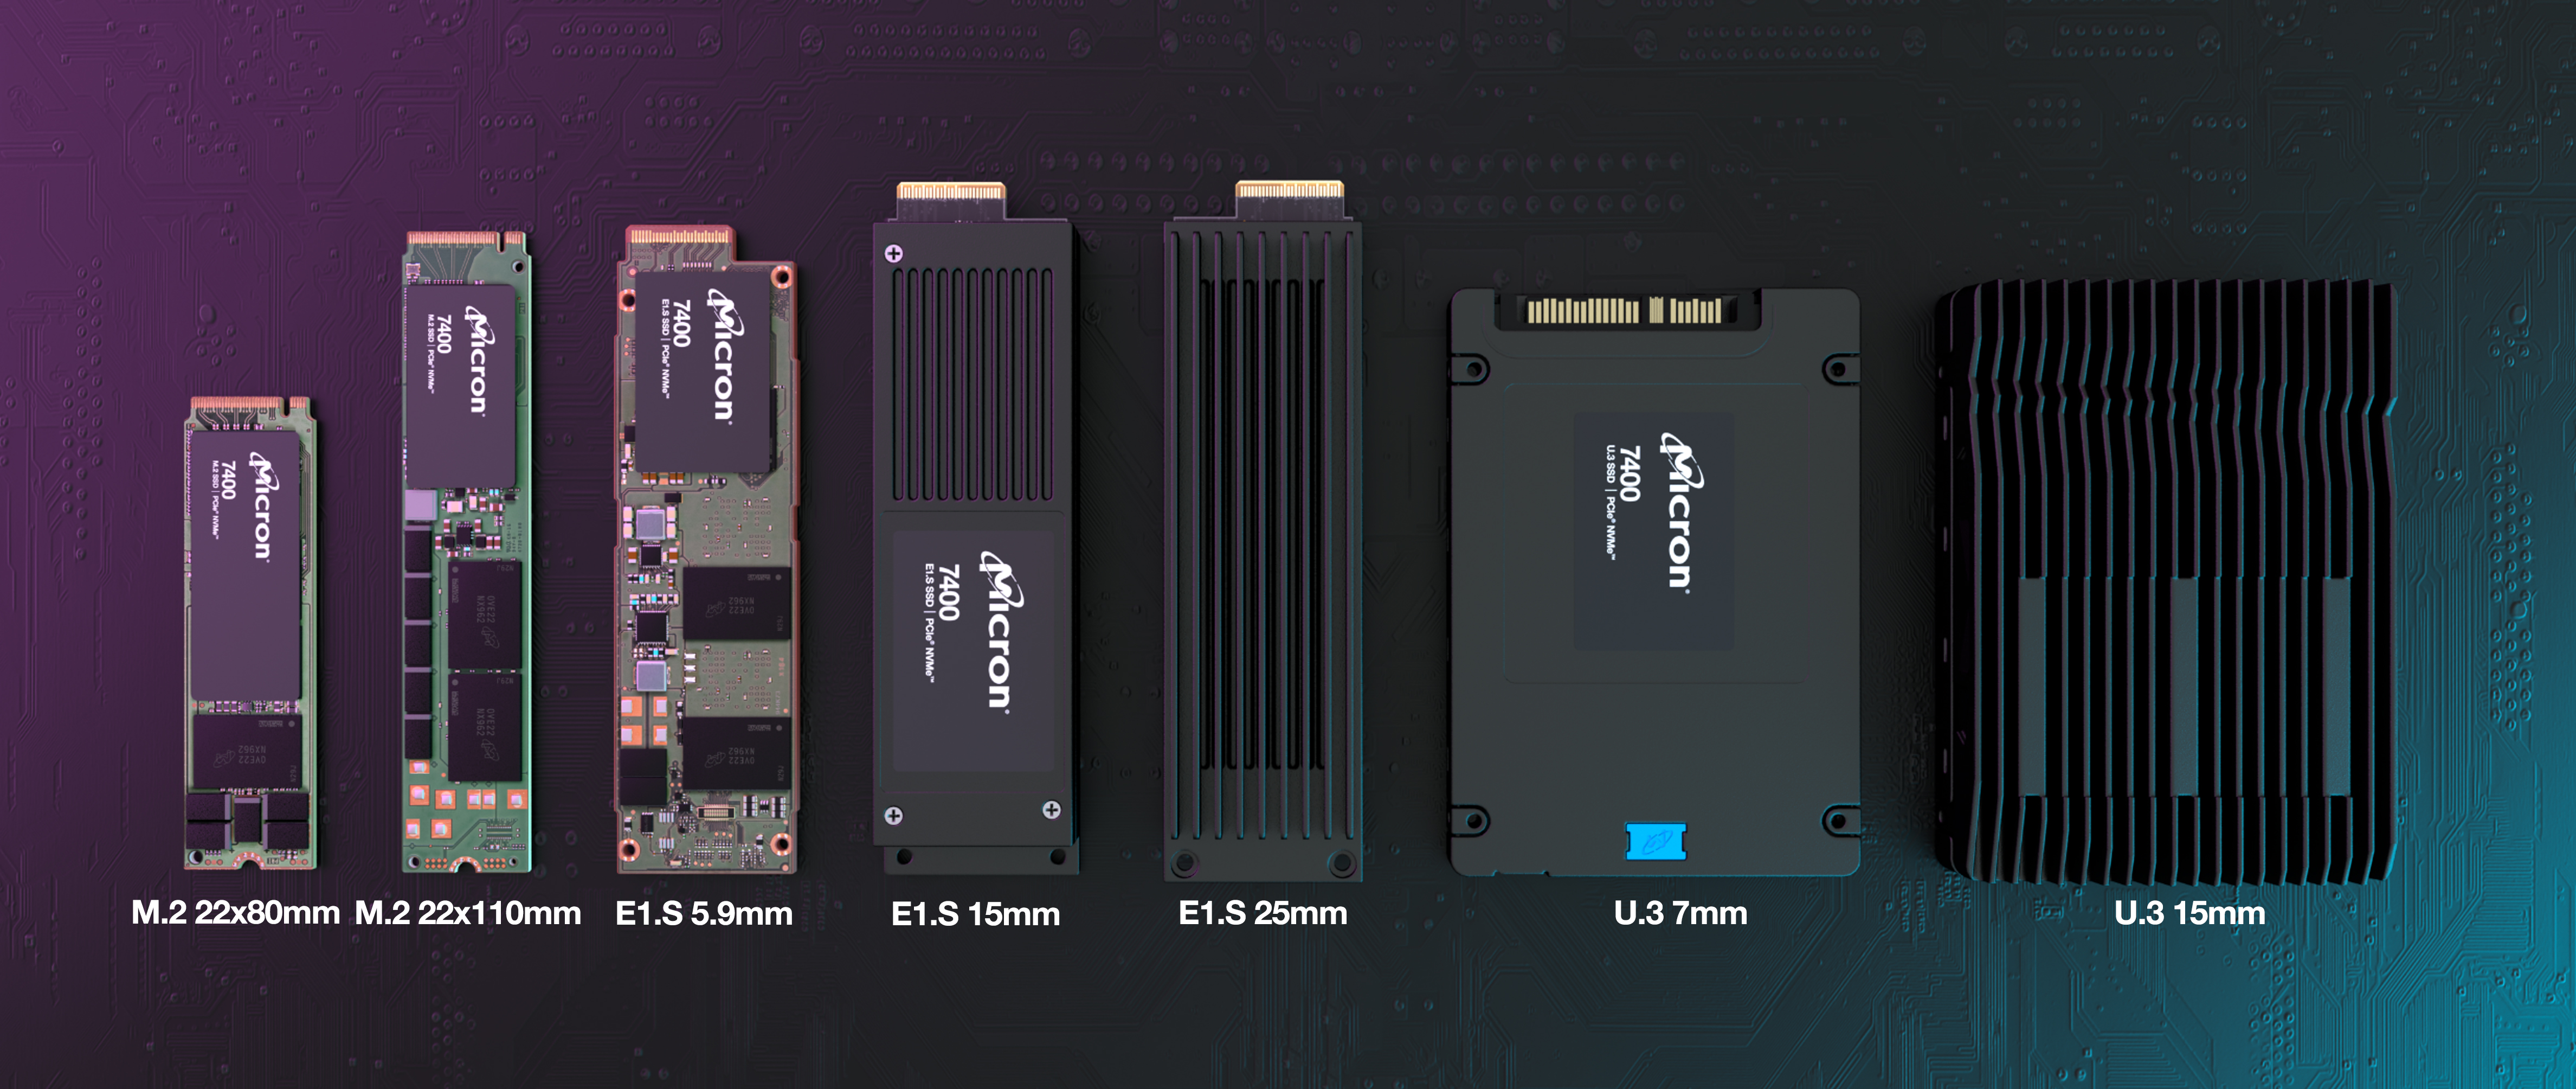 Image of 7400 SSD family with background texture